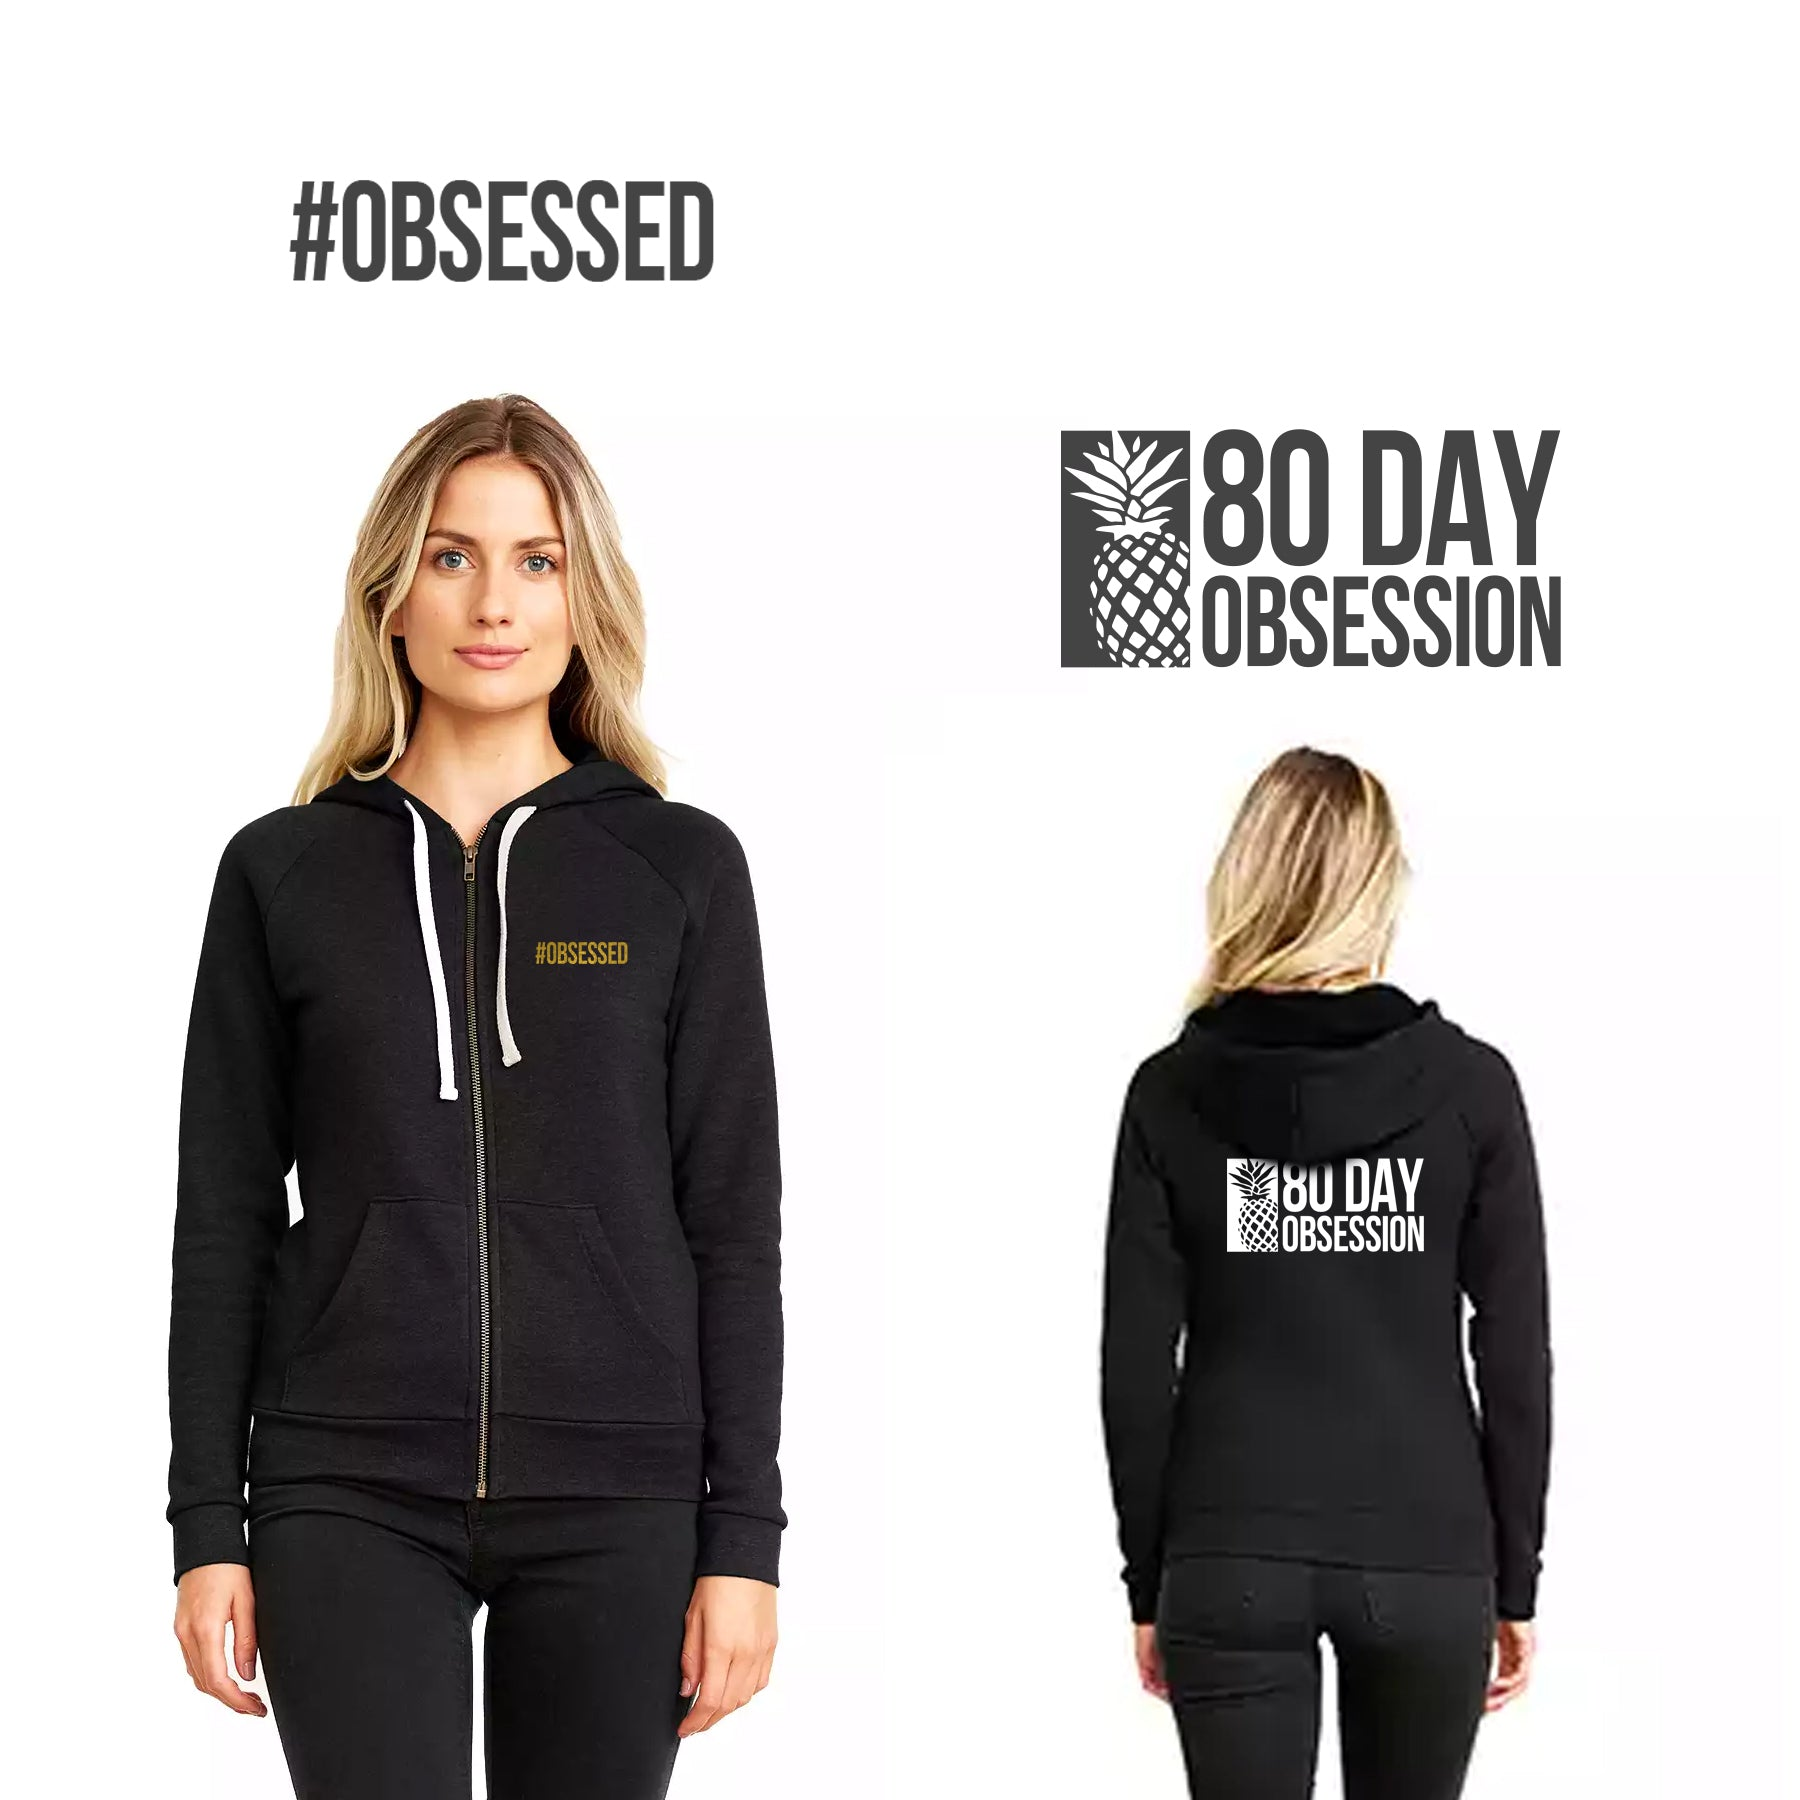 #OBSESSED Zip Hoody